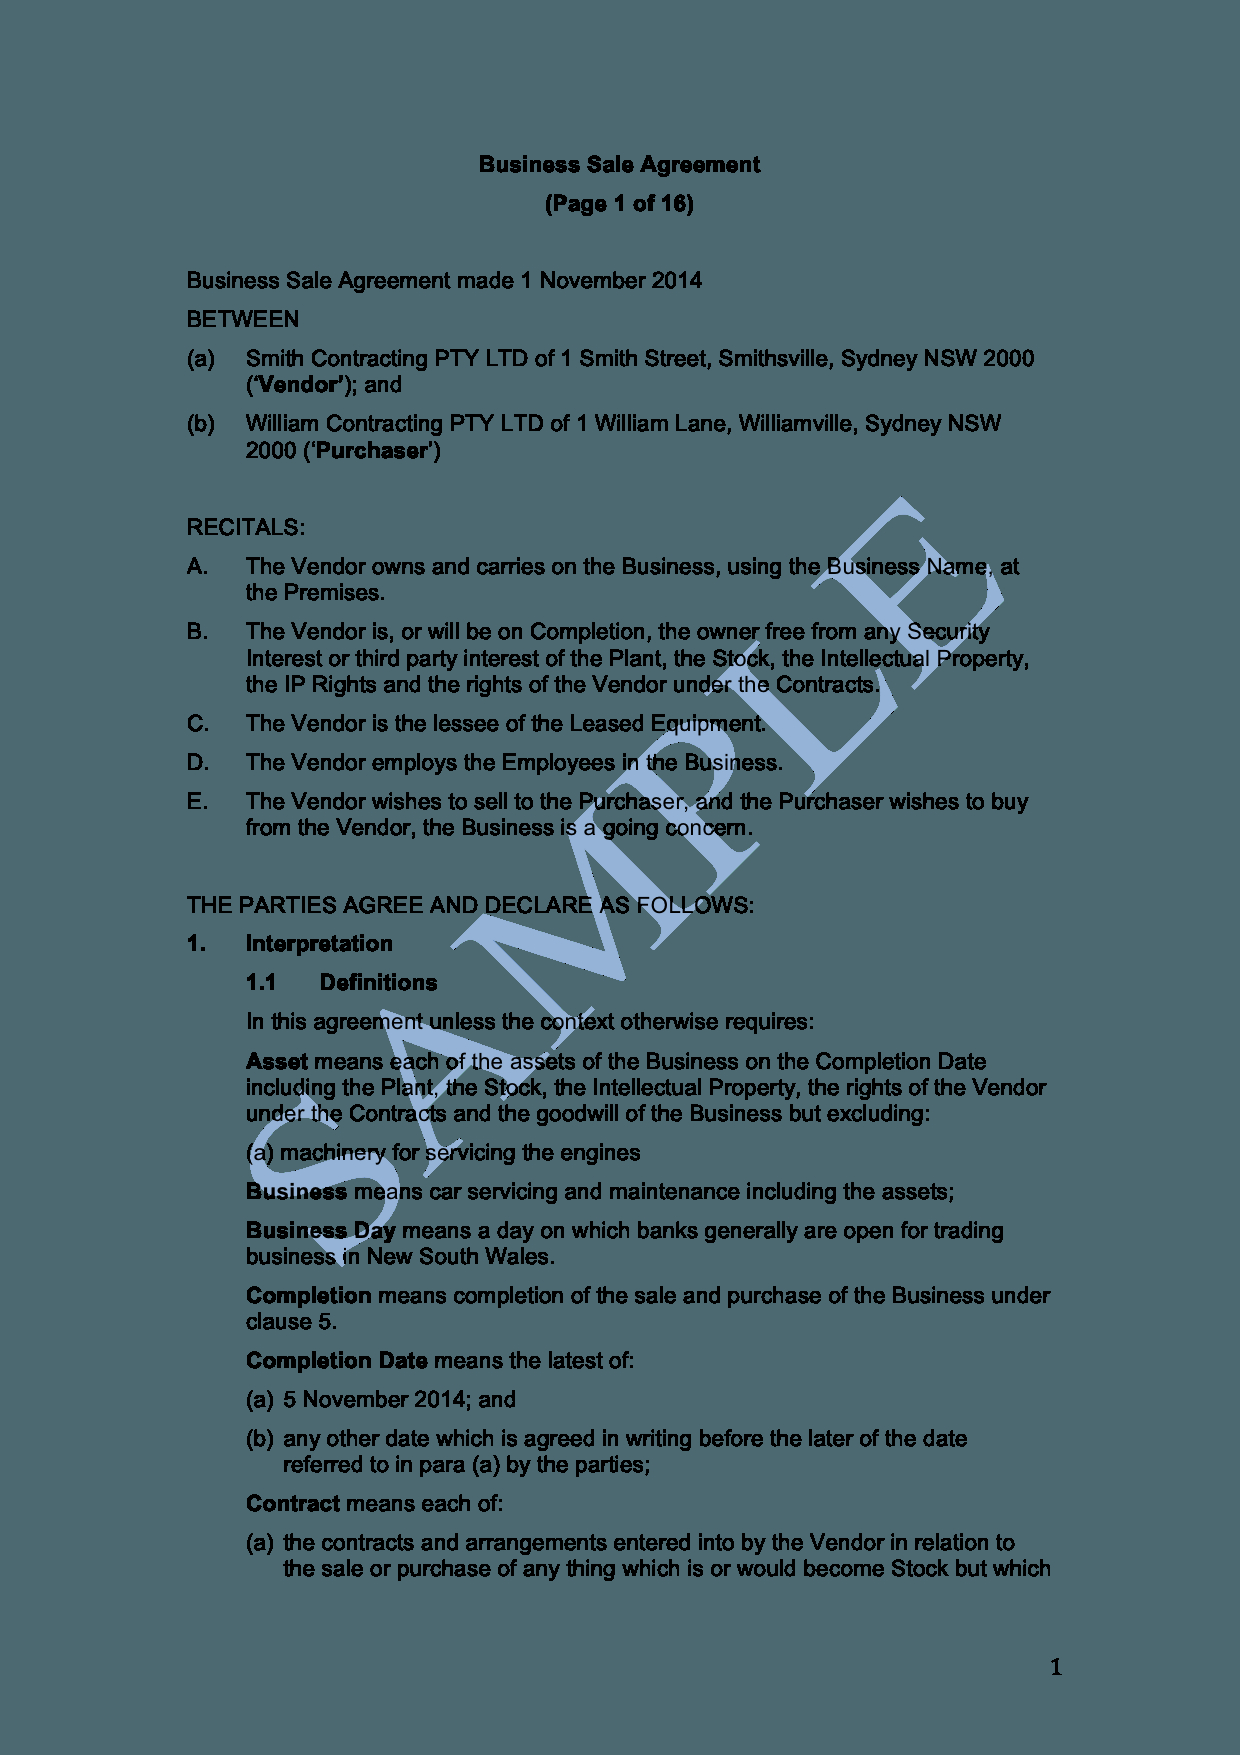 Business Contract Agreement Business Sale Agreement Free Template Sample Lawpath